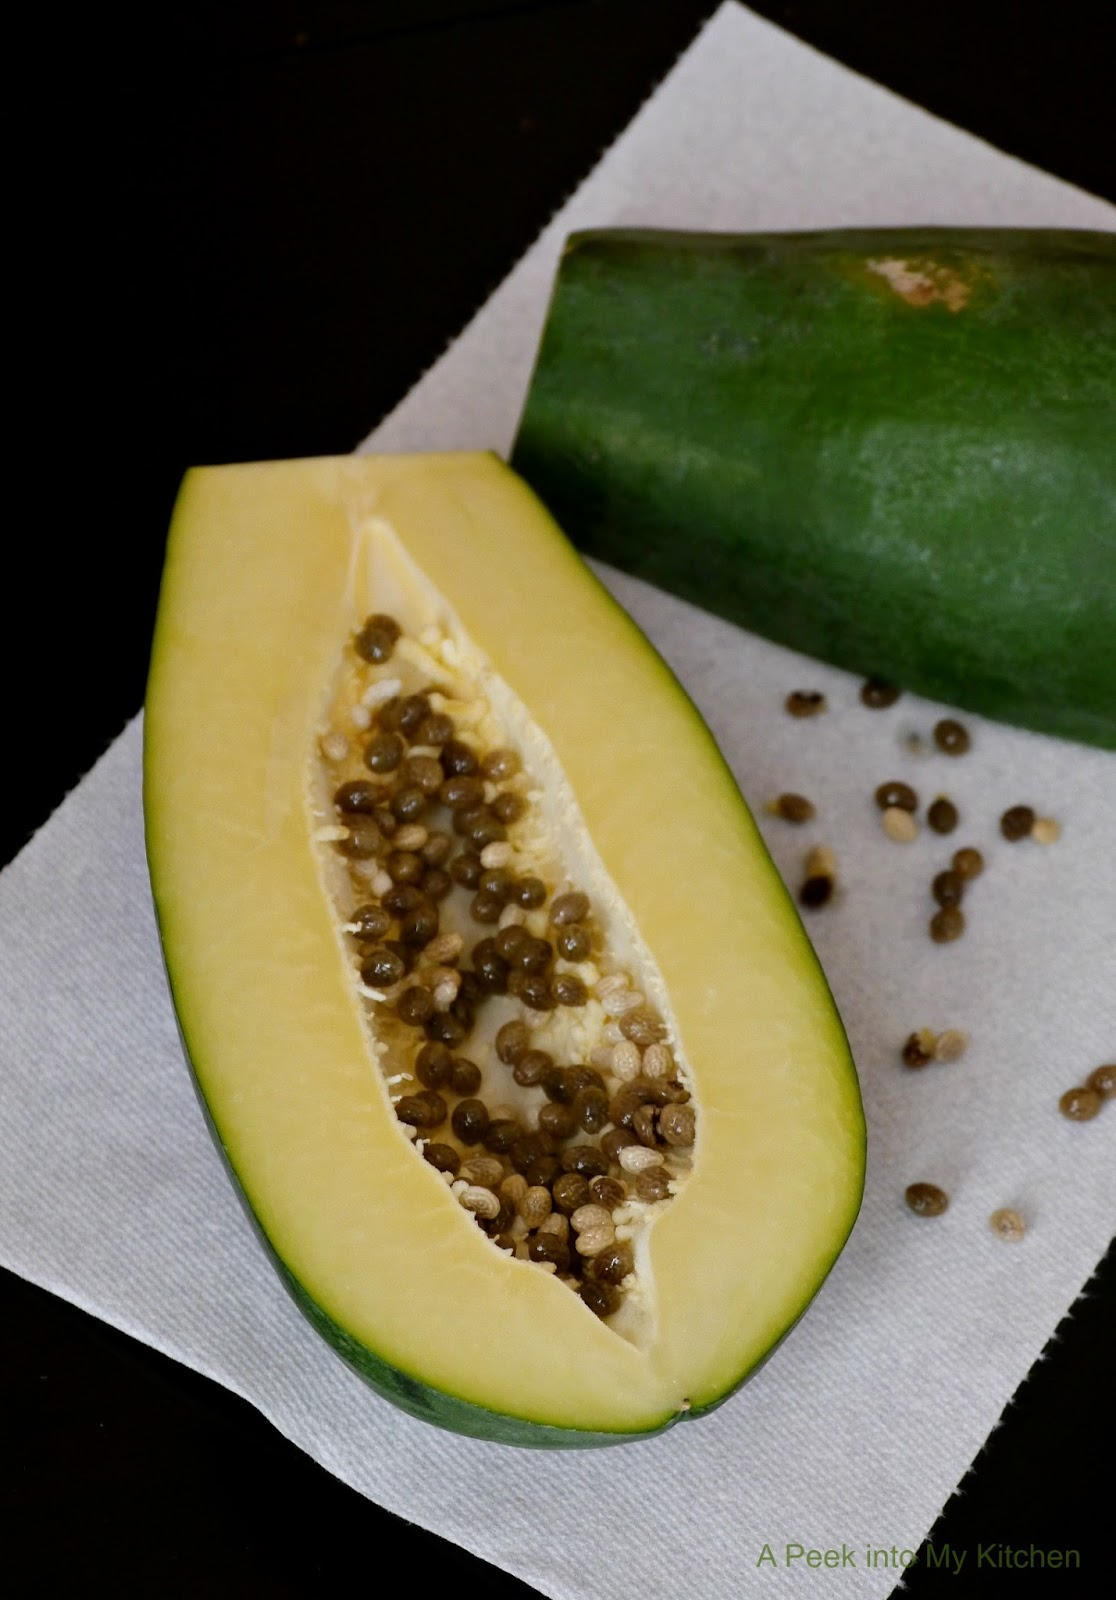 Peek into My Kitchen: Raw (Green) Papaya Dry Curry ~ Day 71